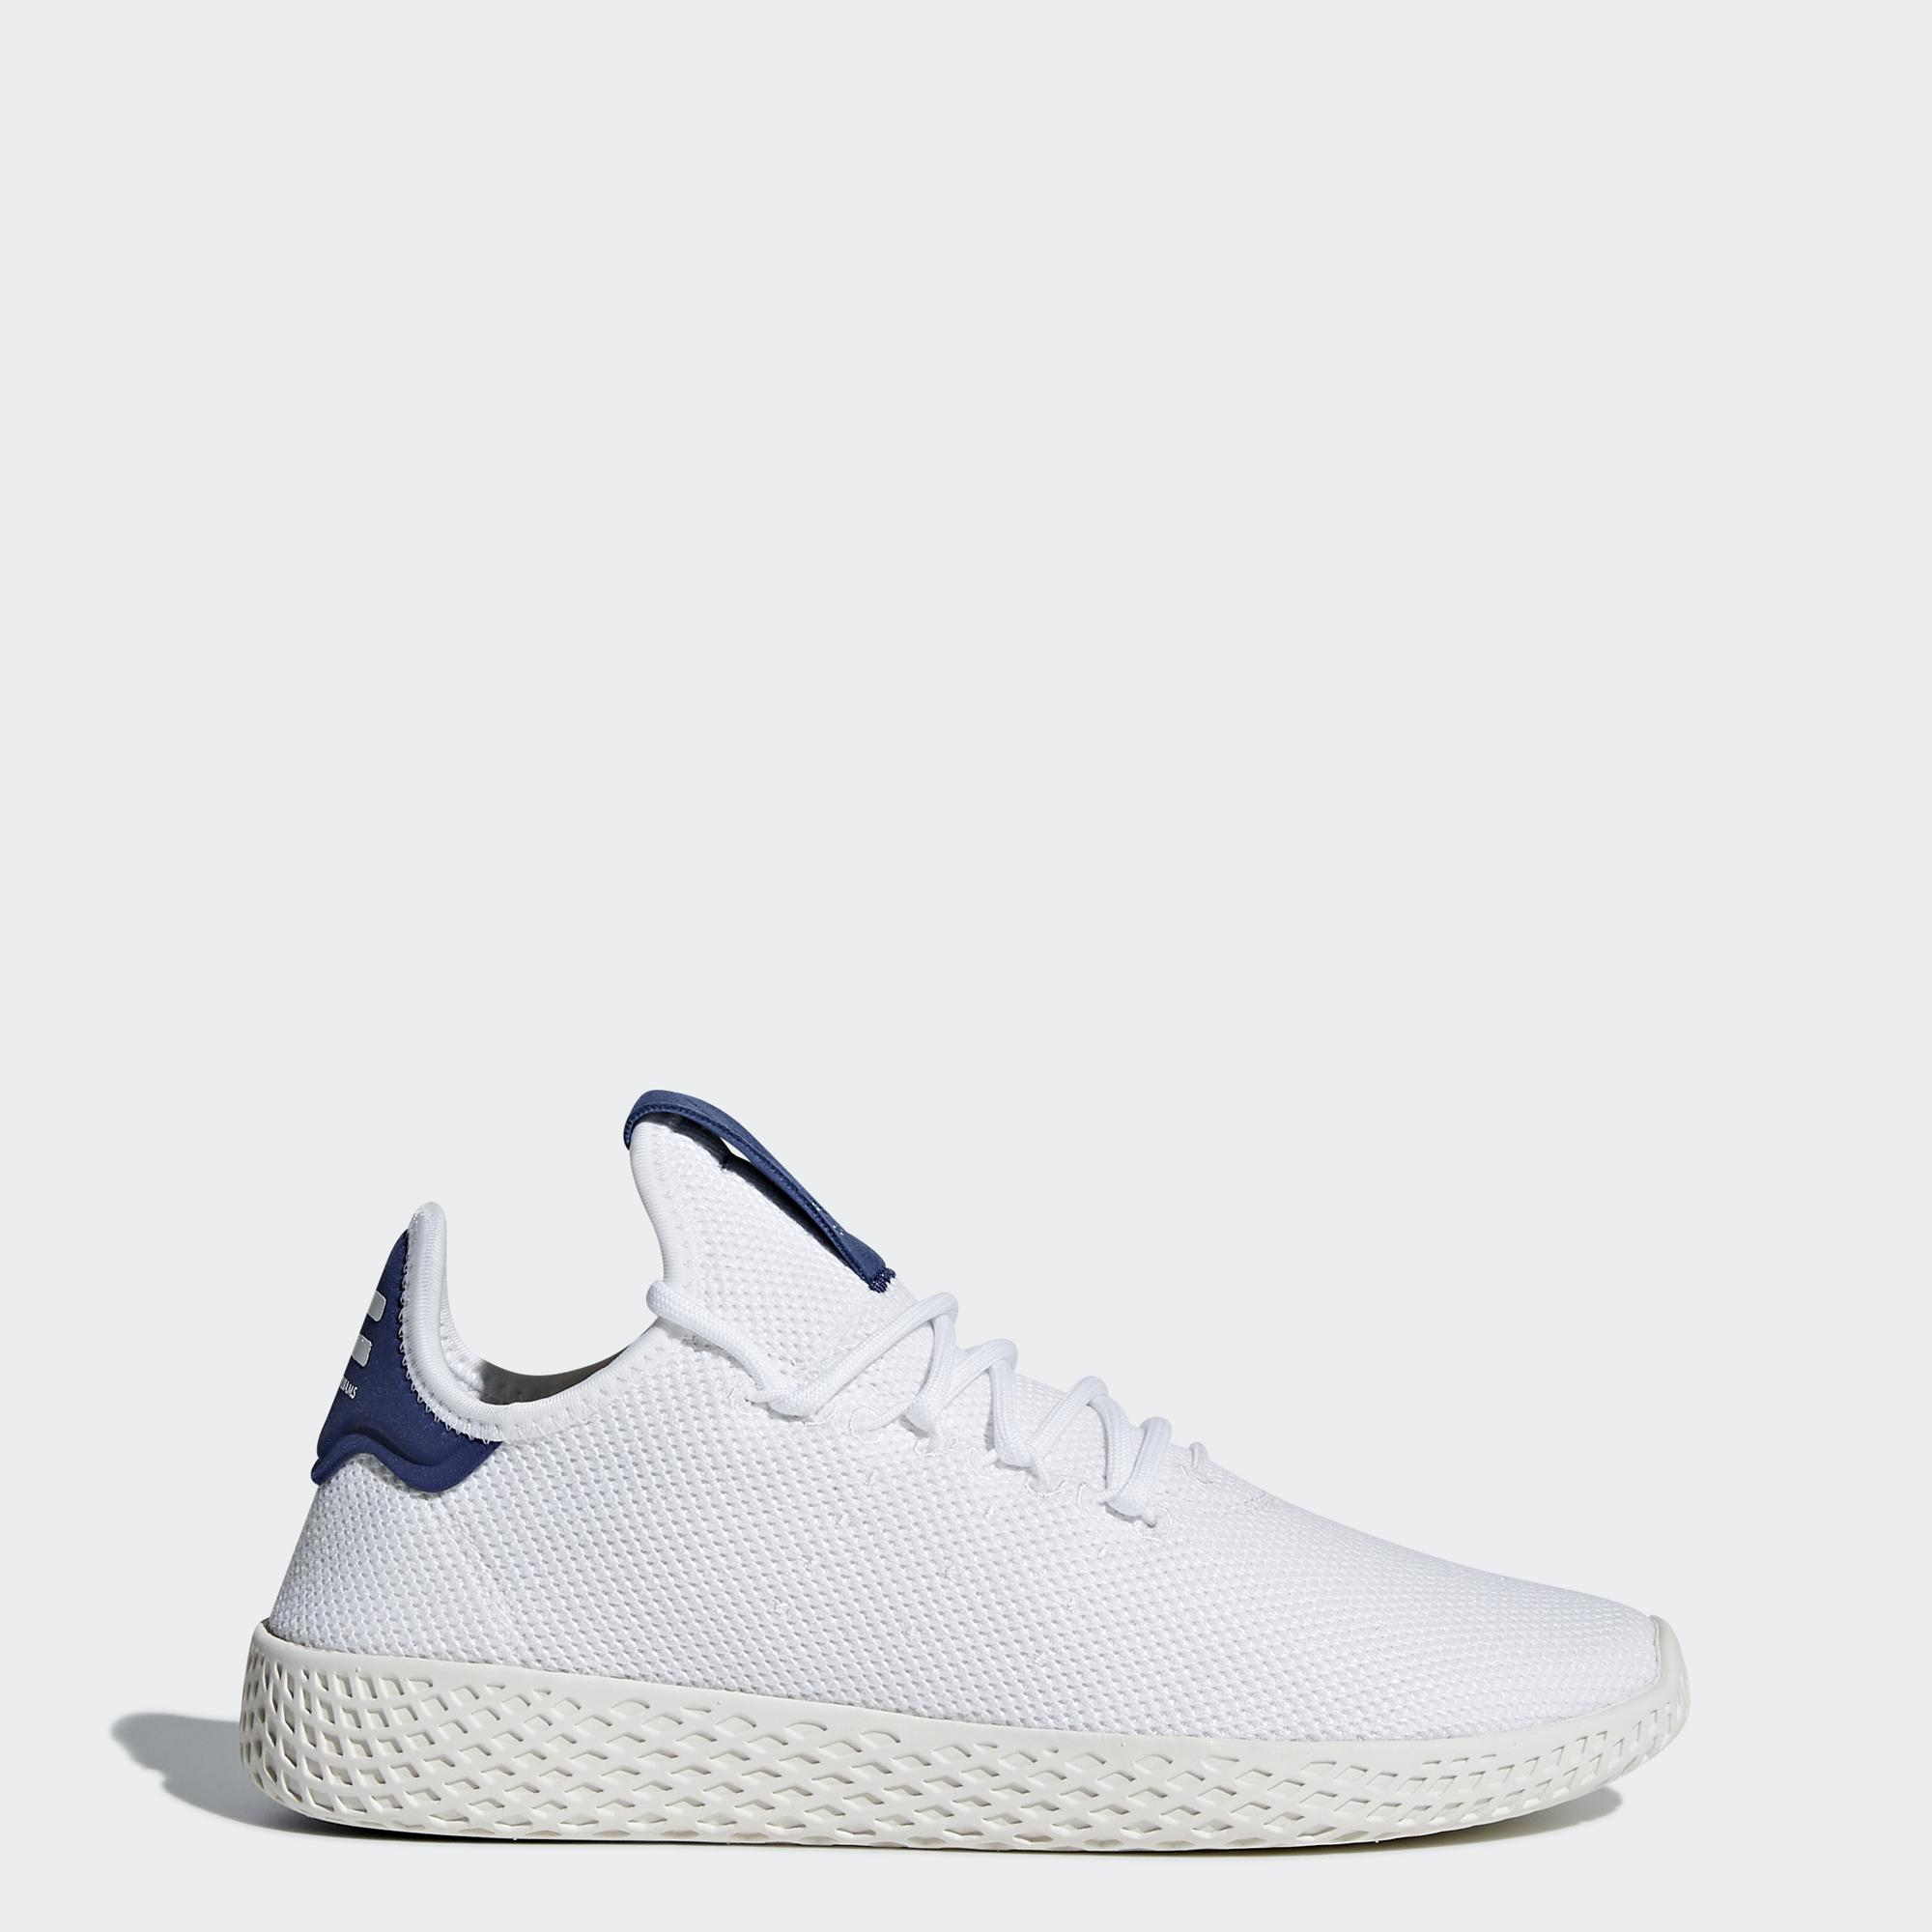 innovative design 3715e 357b2 ADIDAS X Pharrell Williams TENNIS HU W Bianco Blu Art. db2559 Sneaker donna  - mainstreetblytheville.org